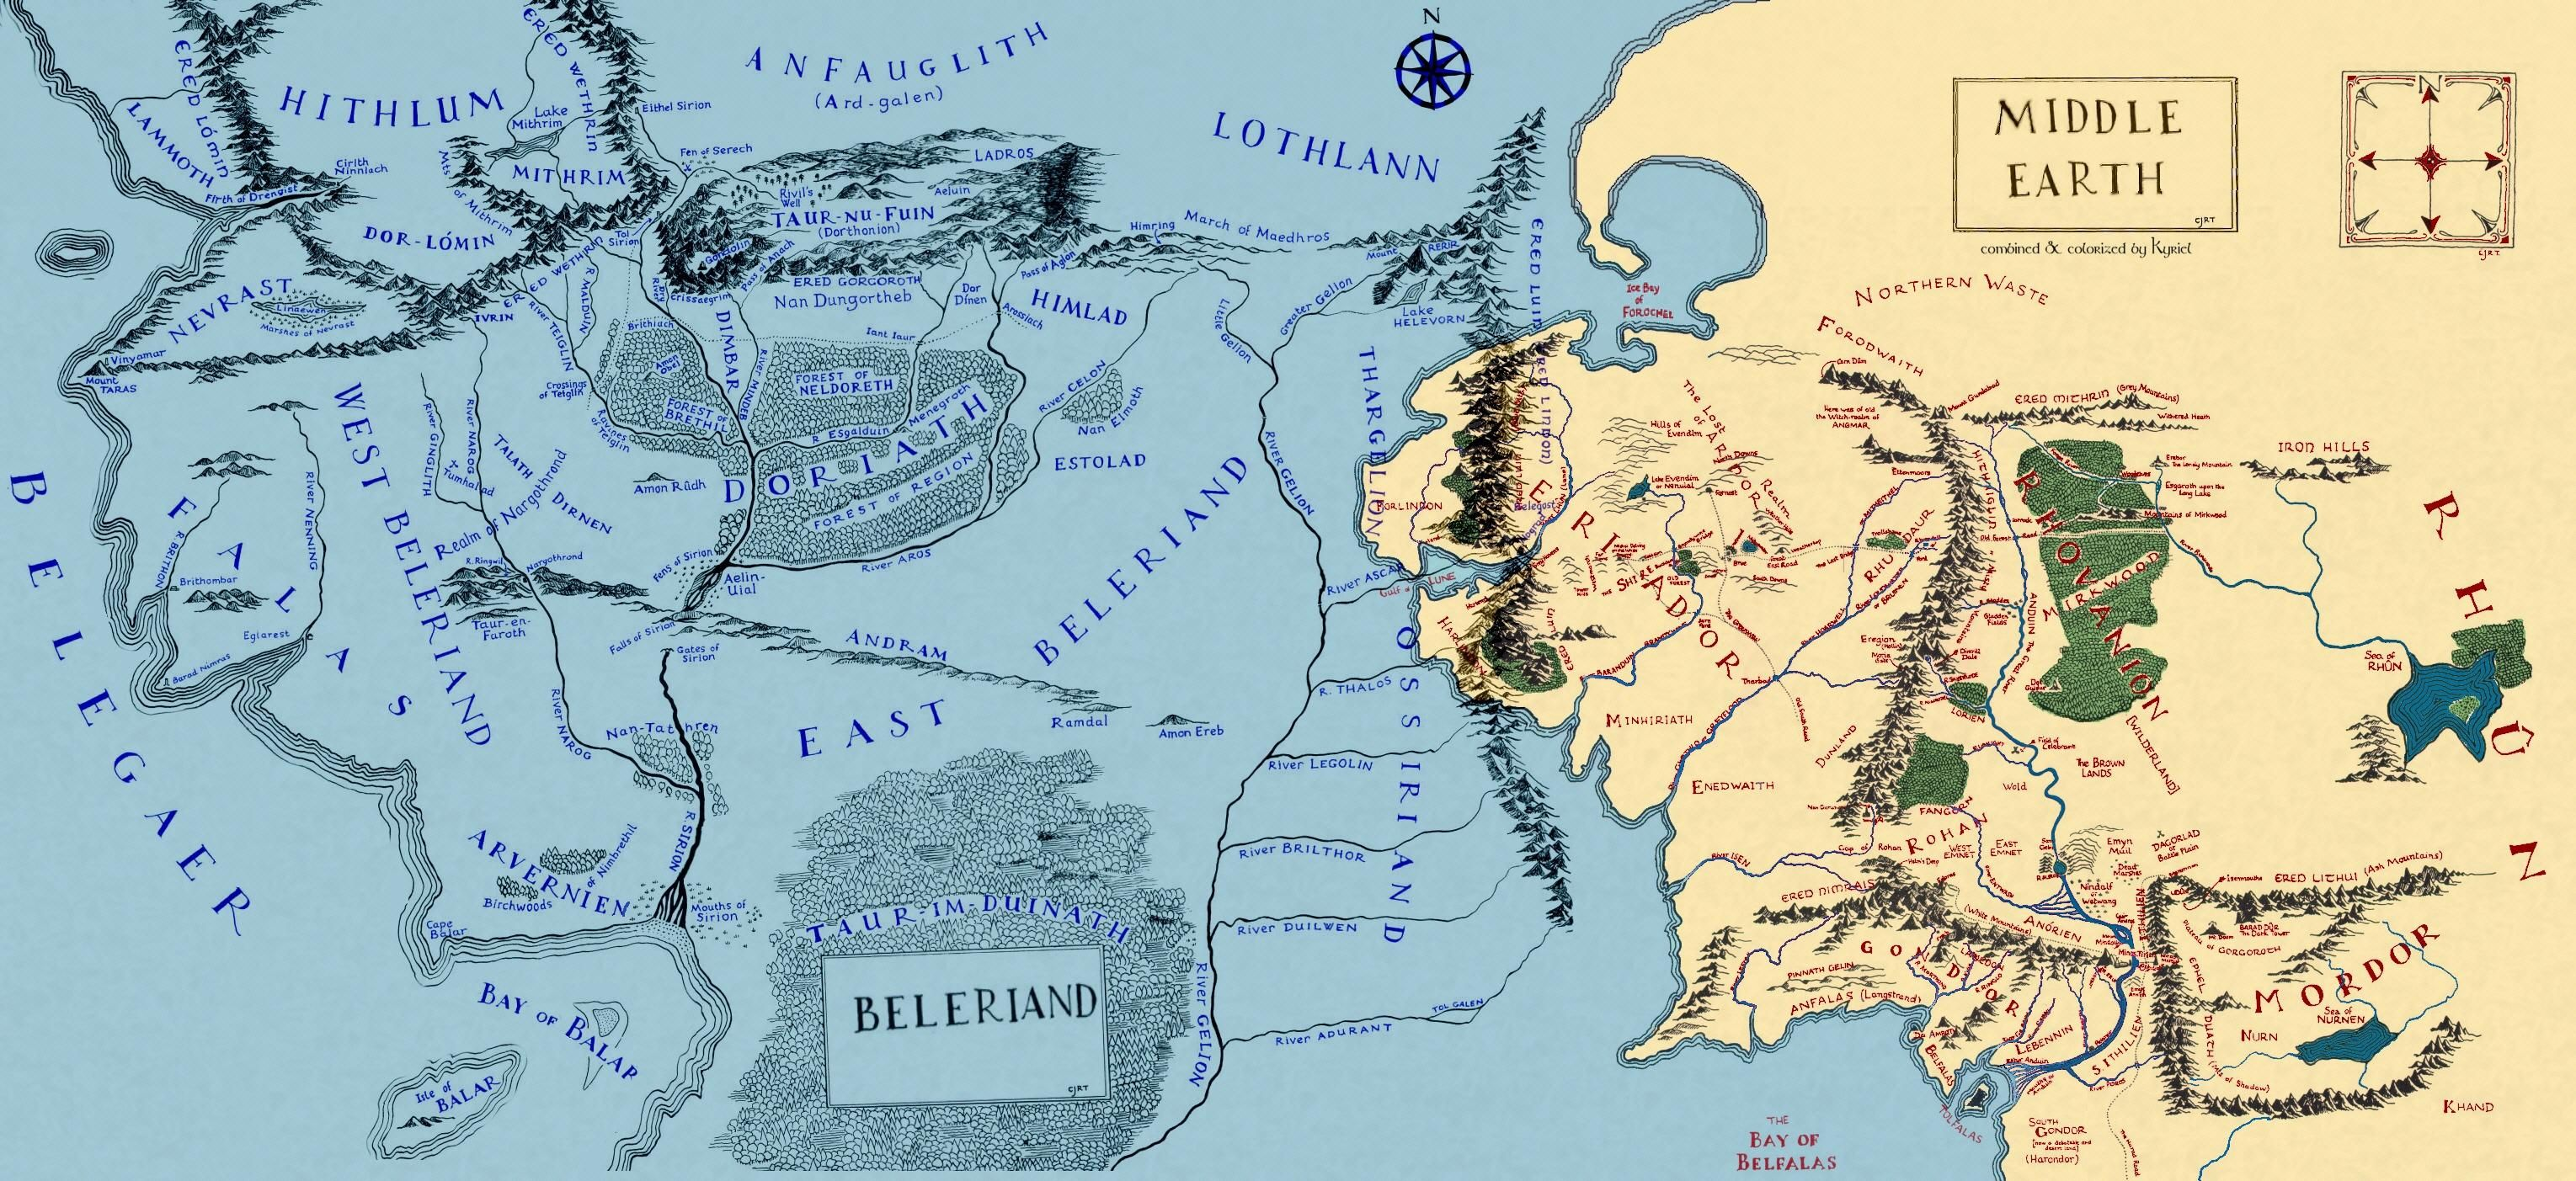 Middle Earth in the First Age way before LOTR